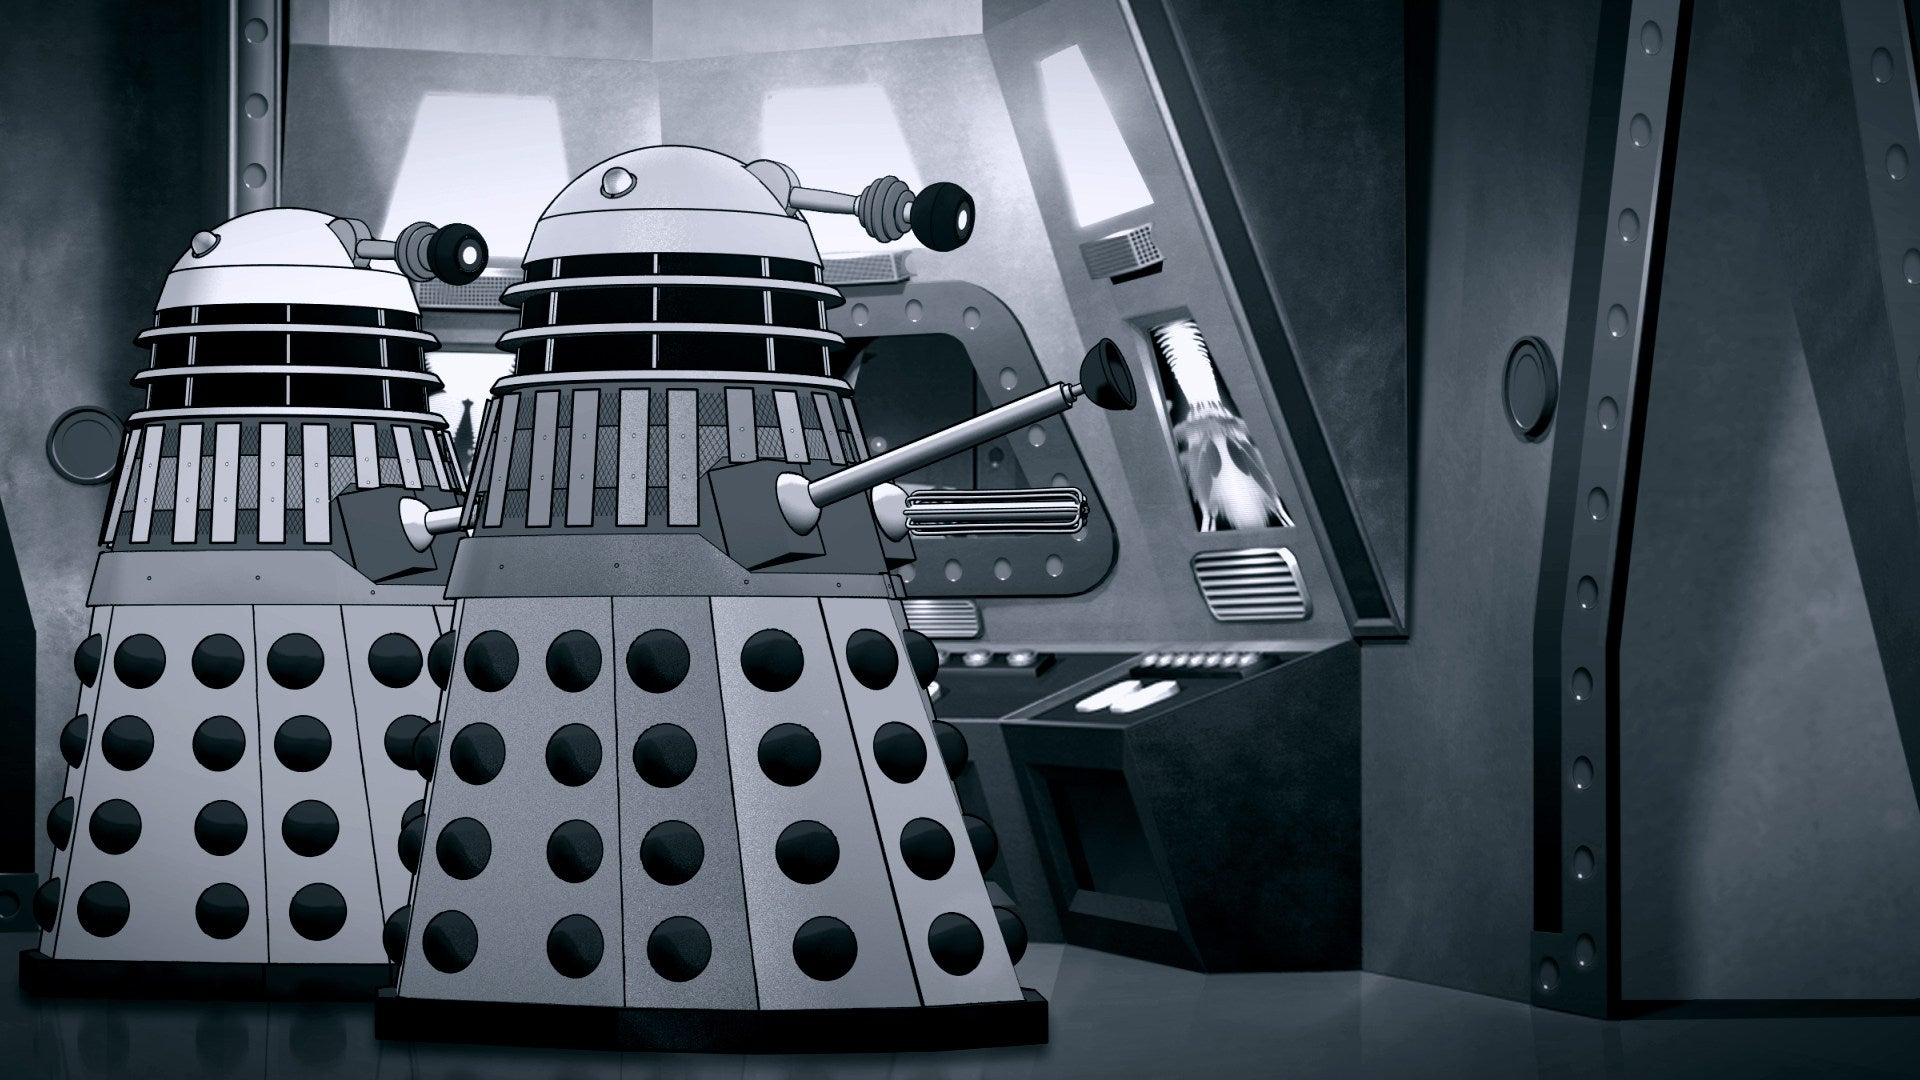 Missing Doctor WhoStory Power Of The DaleksIs Getting An Animated Reconstruction